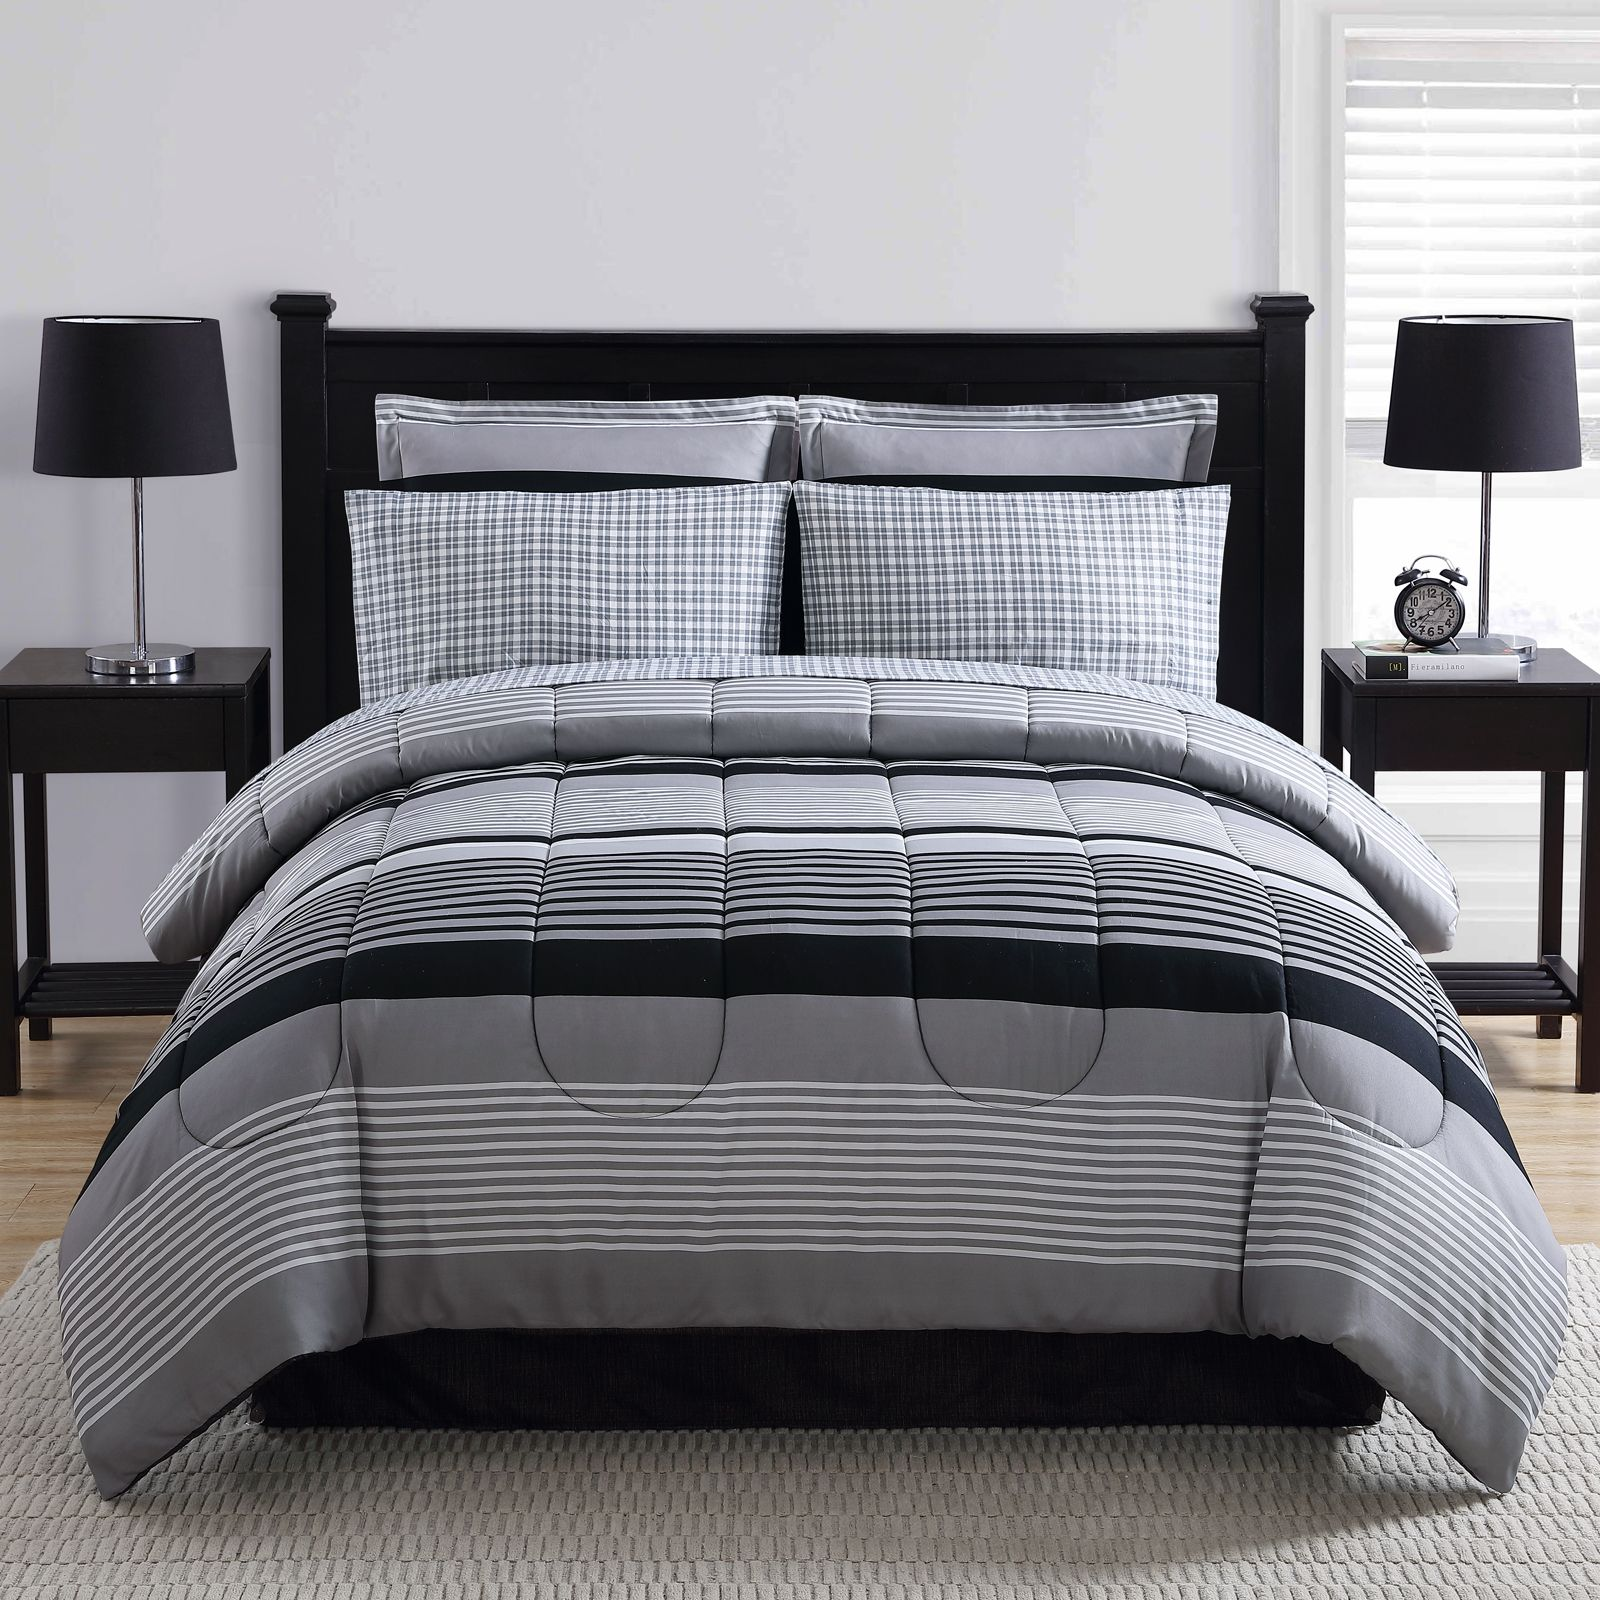 Sears online robbyus room pinterest comforter and products